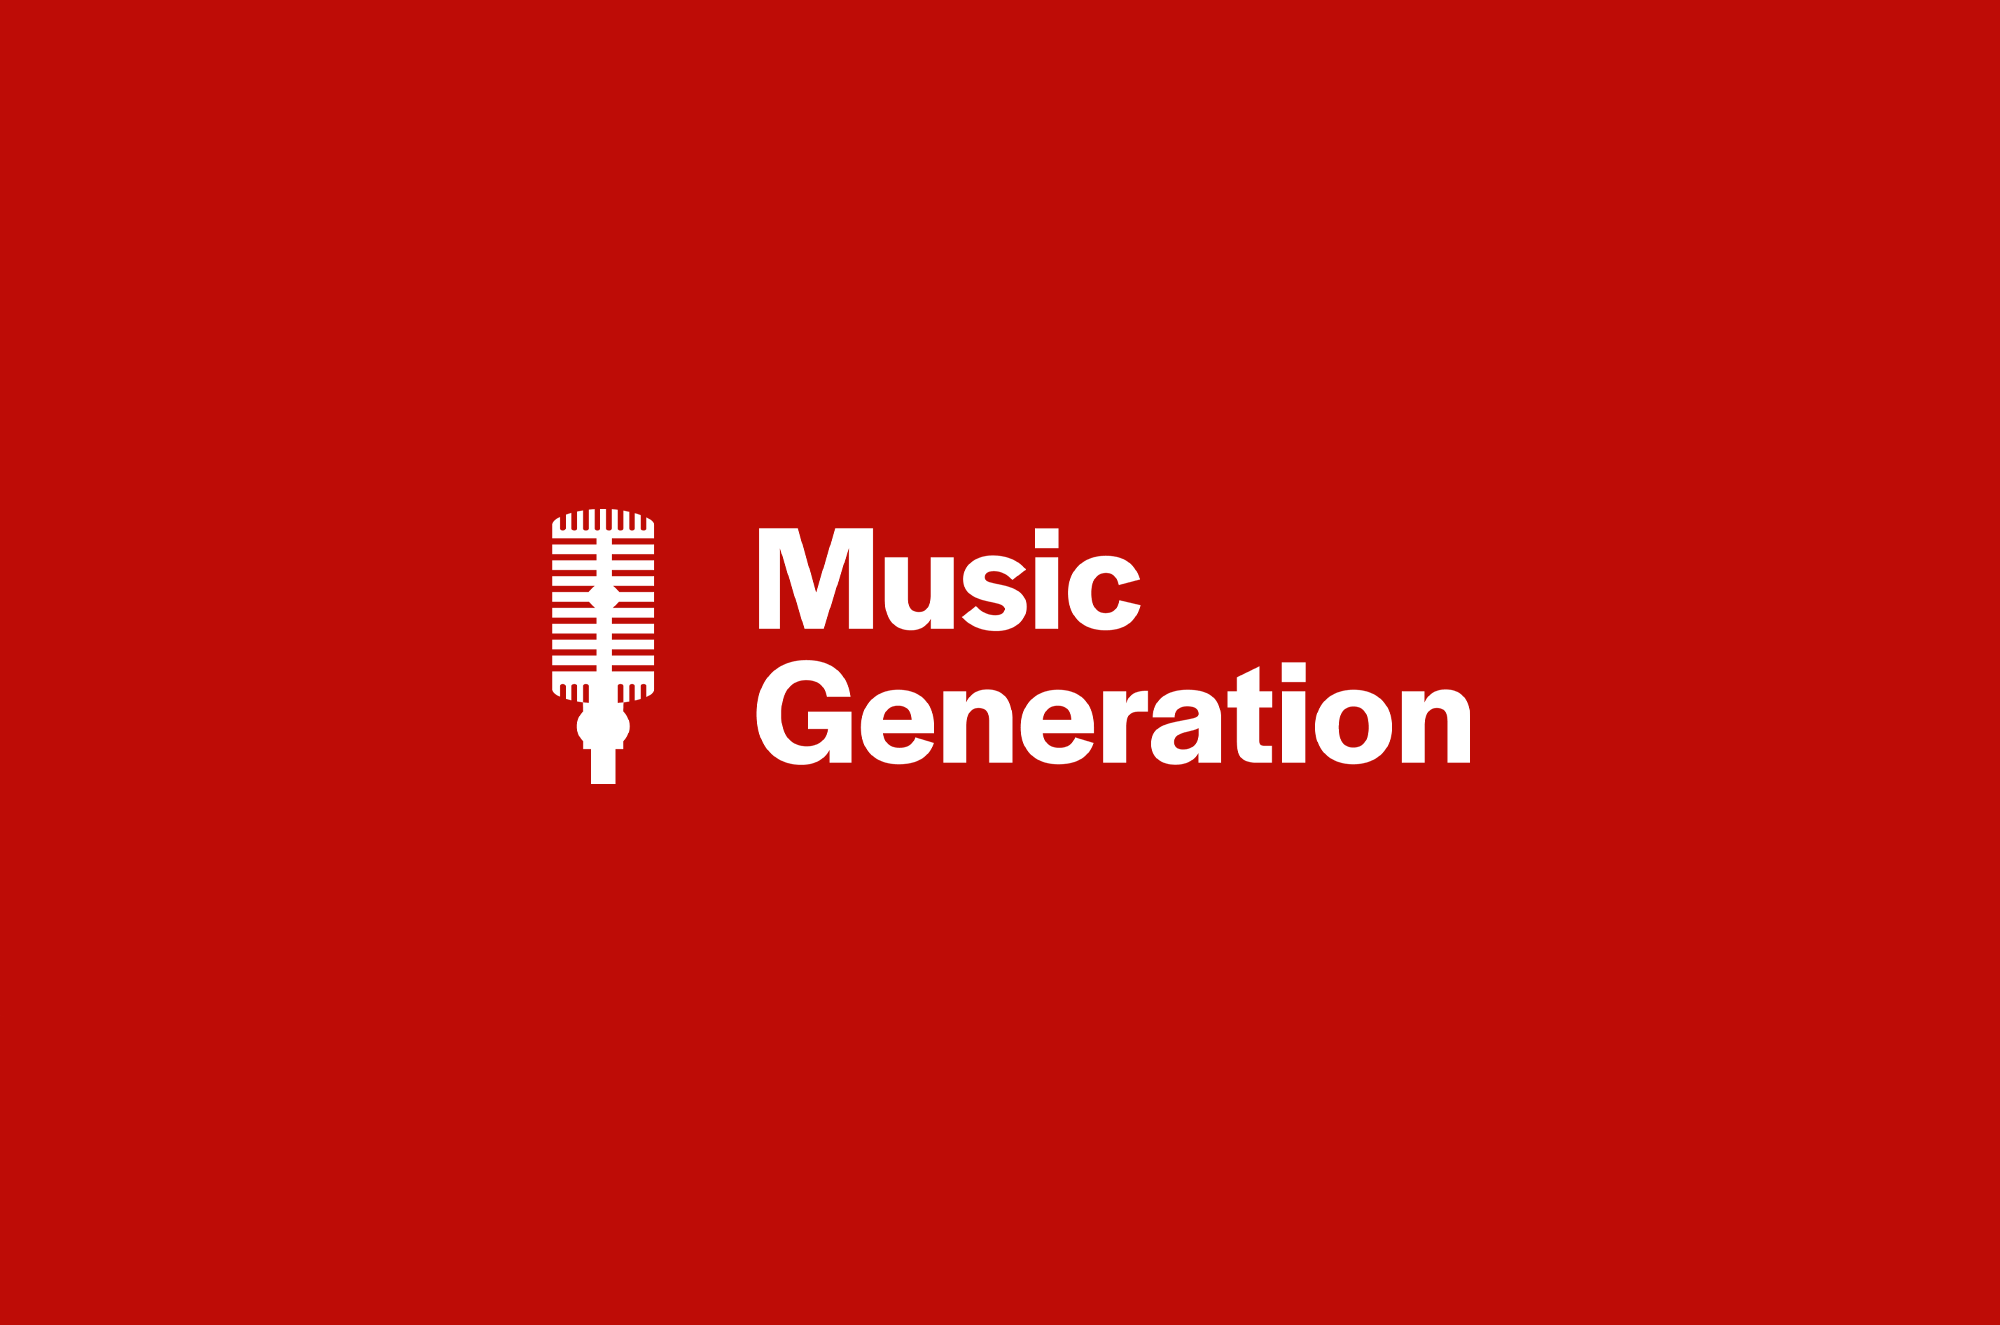 Cover image: Music Generation